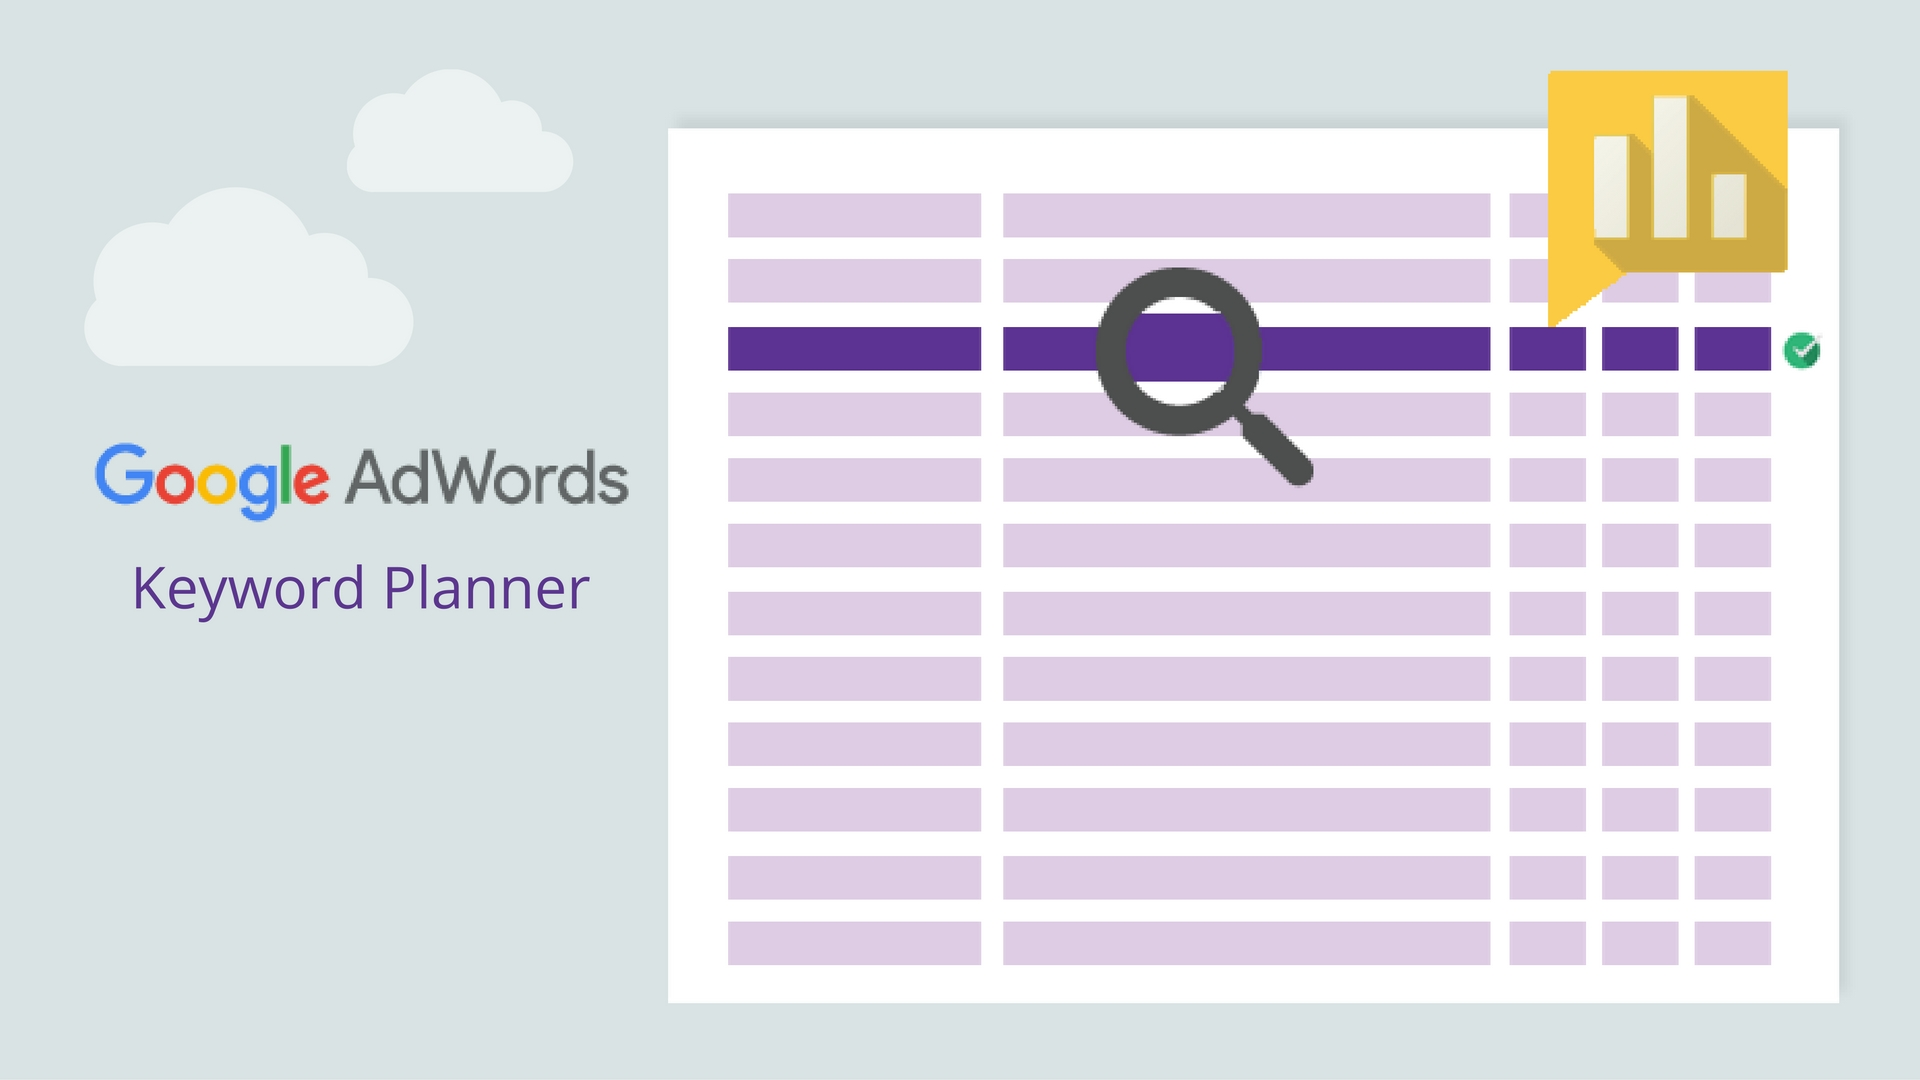 Step By Step Guide To Use Google Keyword Planner